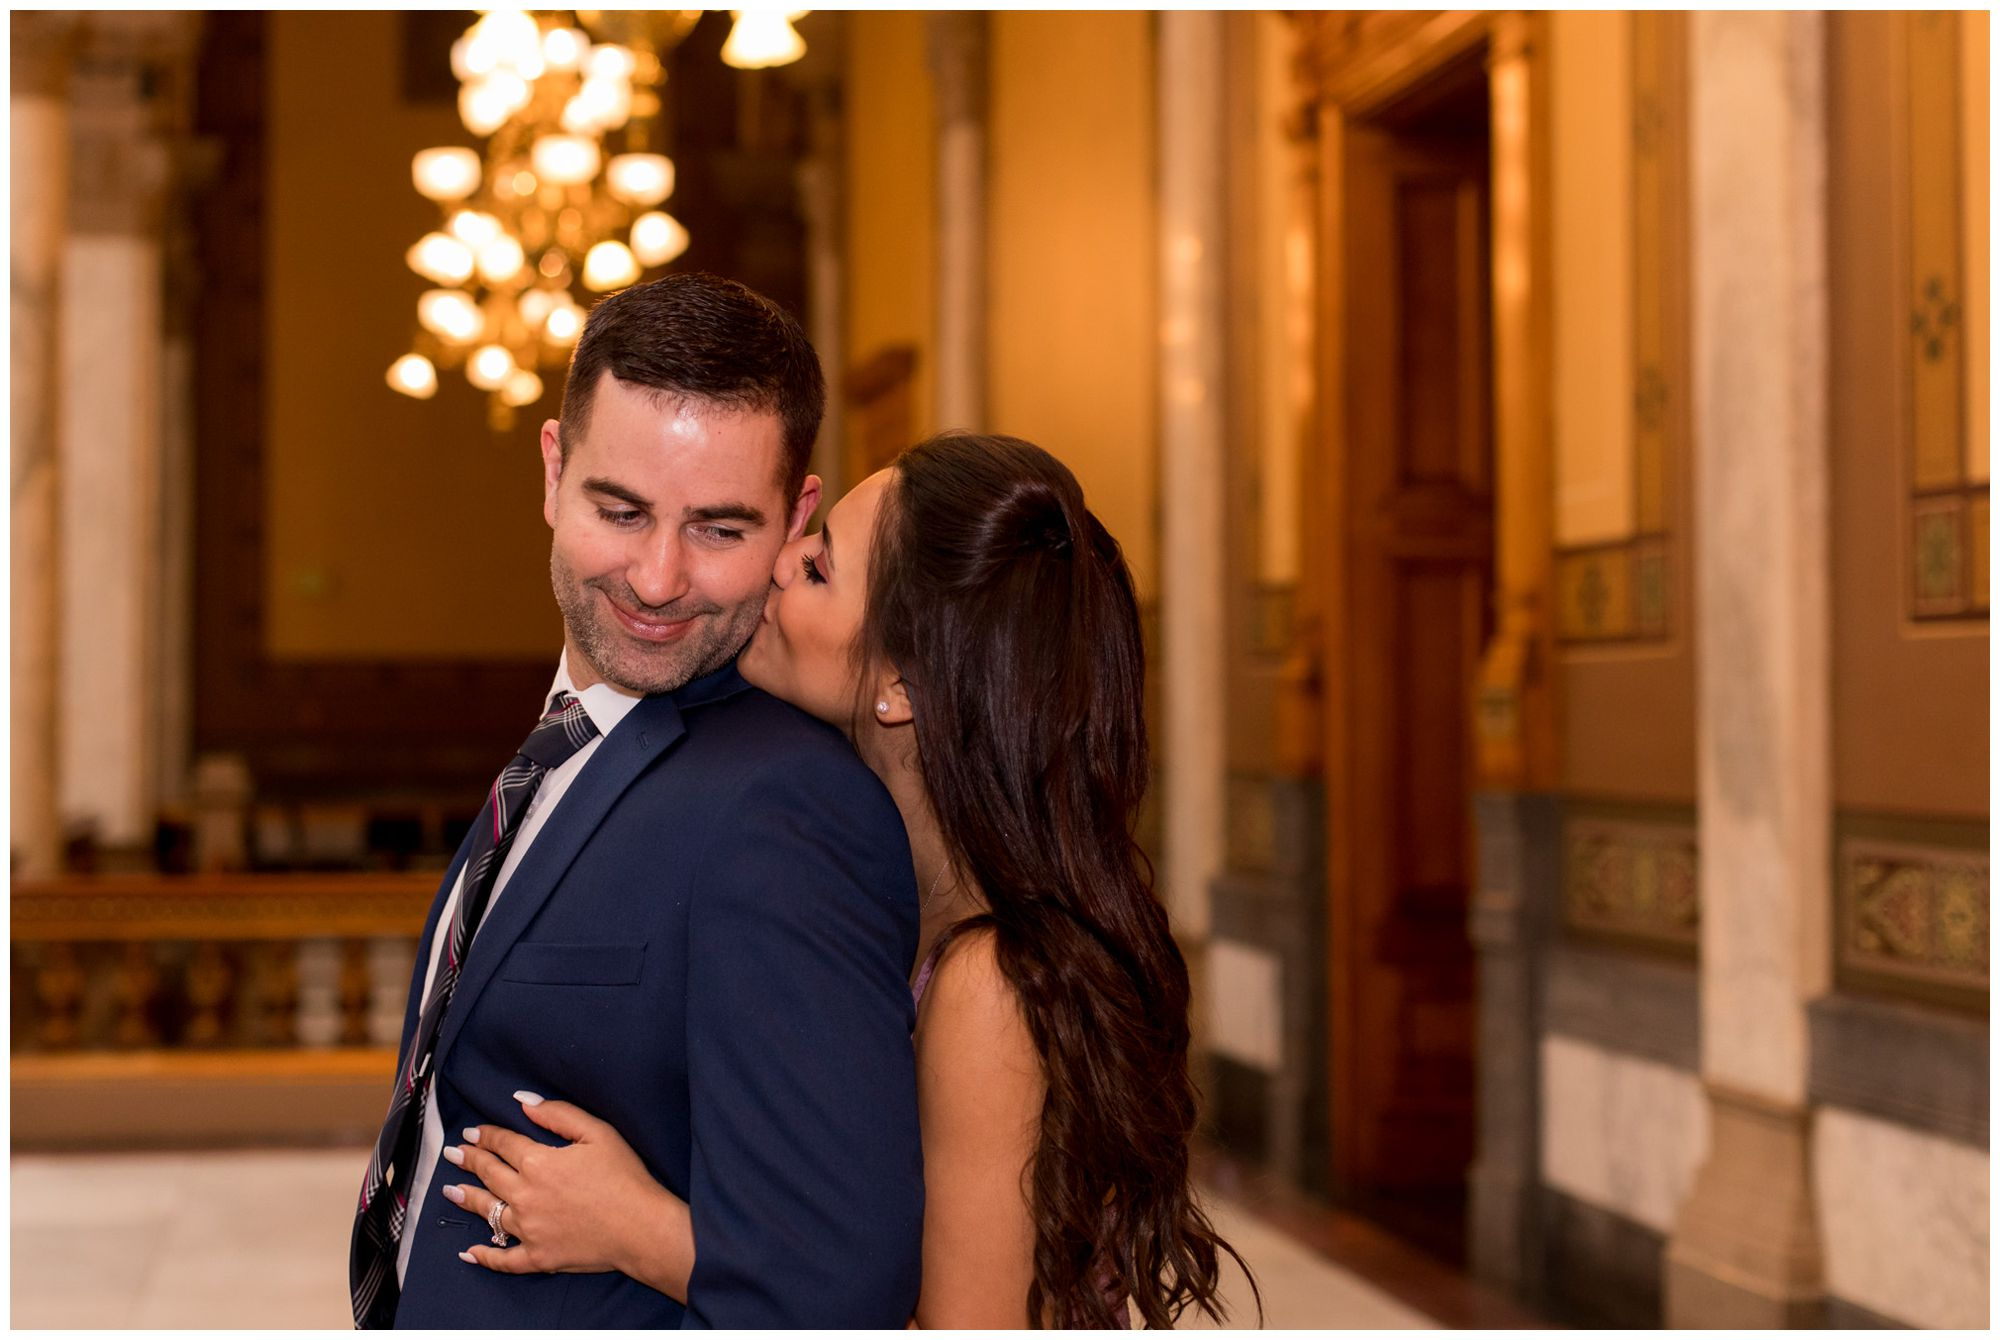 bride kisses groom's cheek at Indiana Statehouse after elopement ceremony in downtown Indianapolis